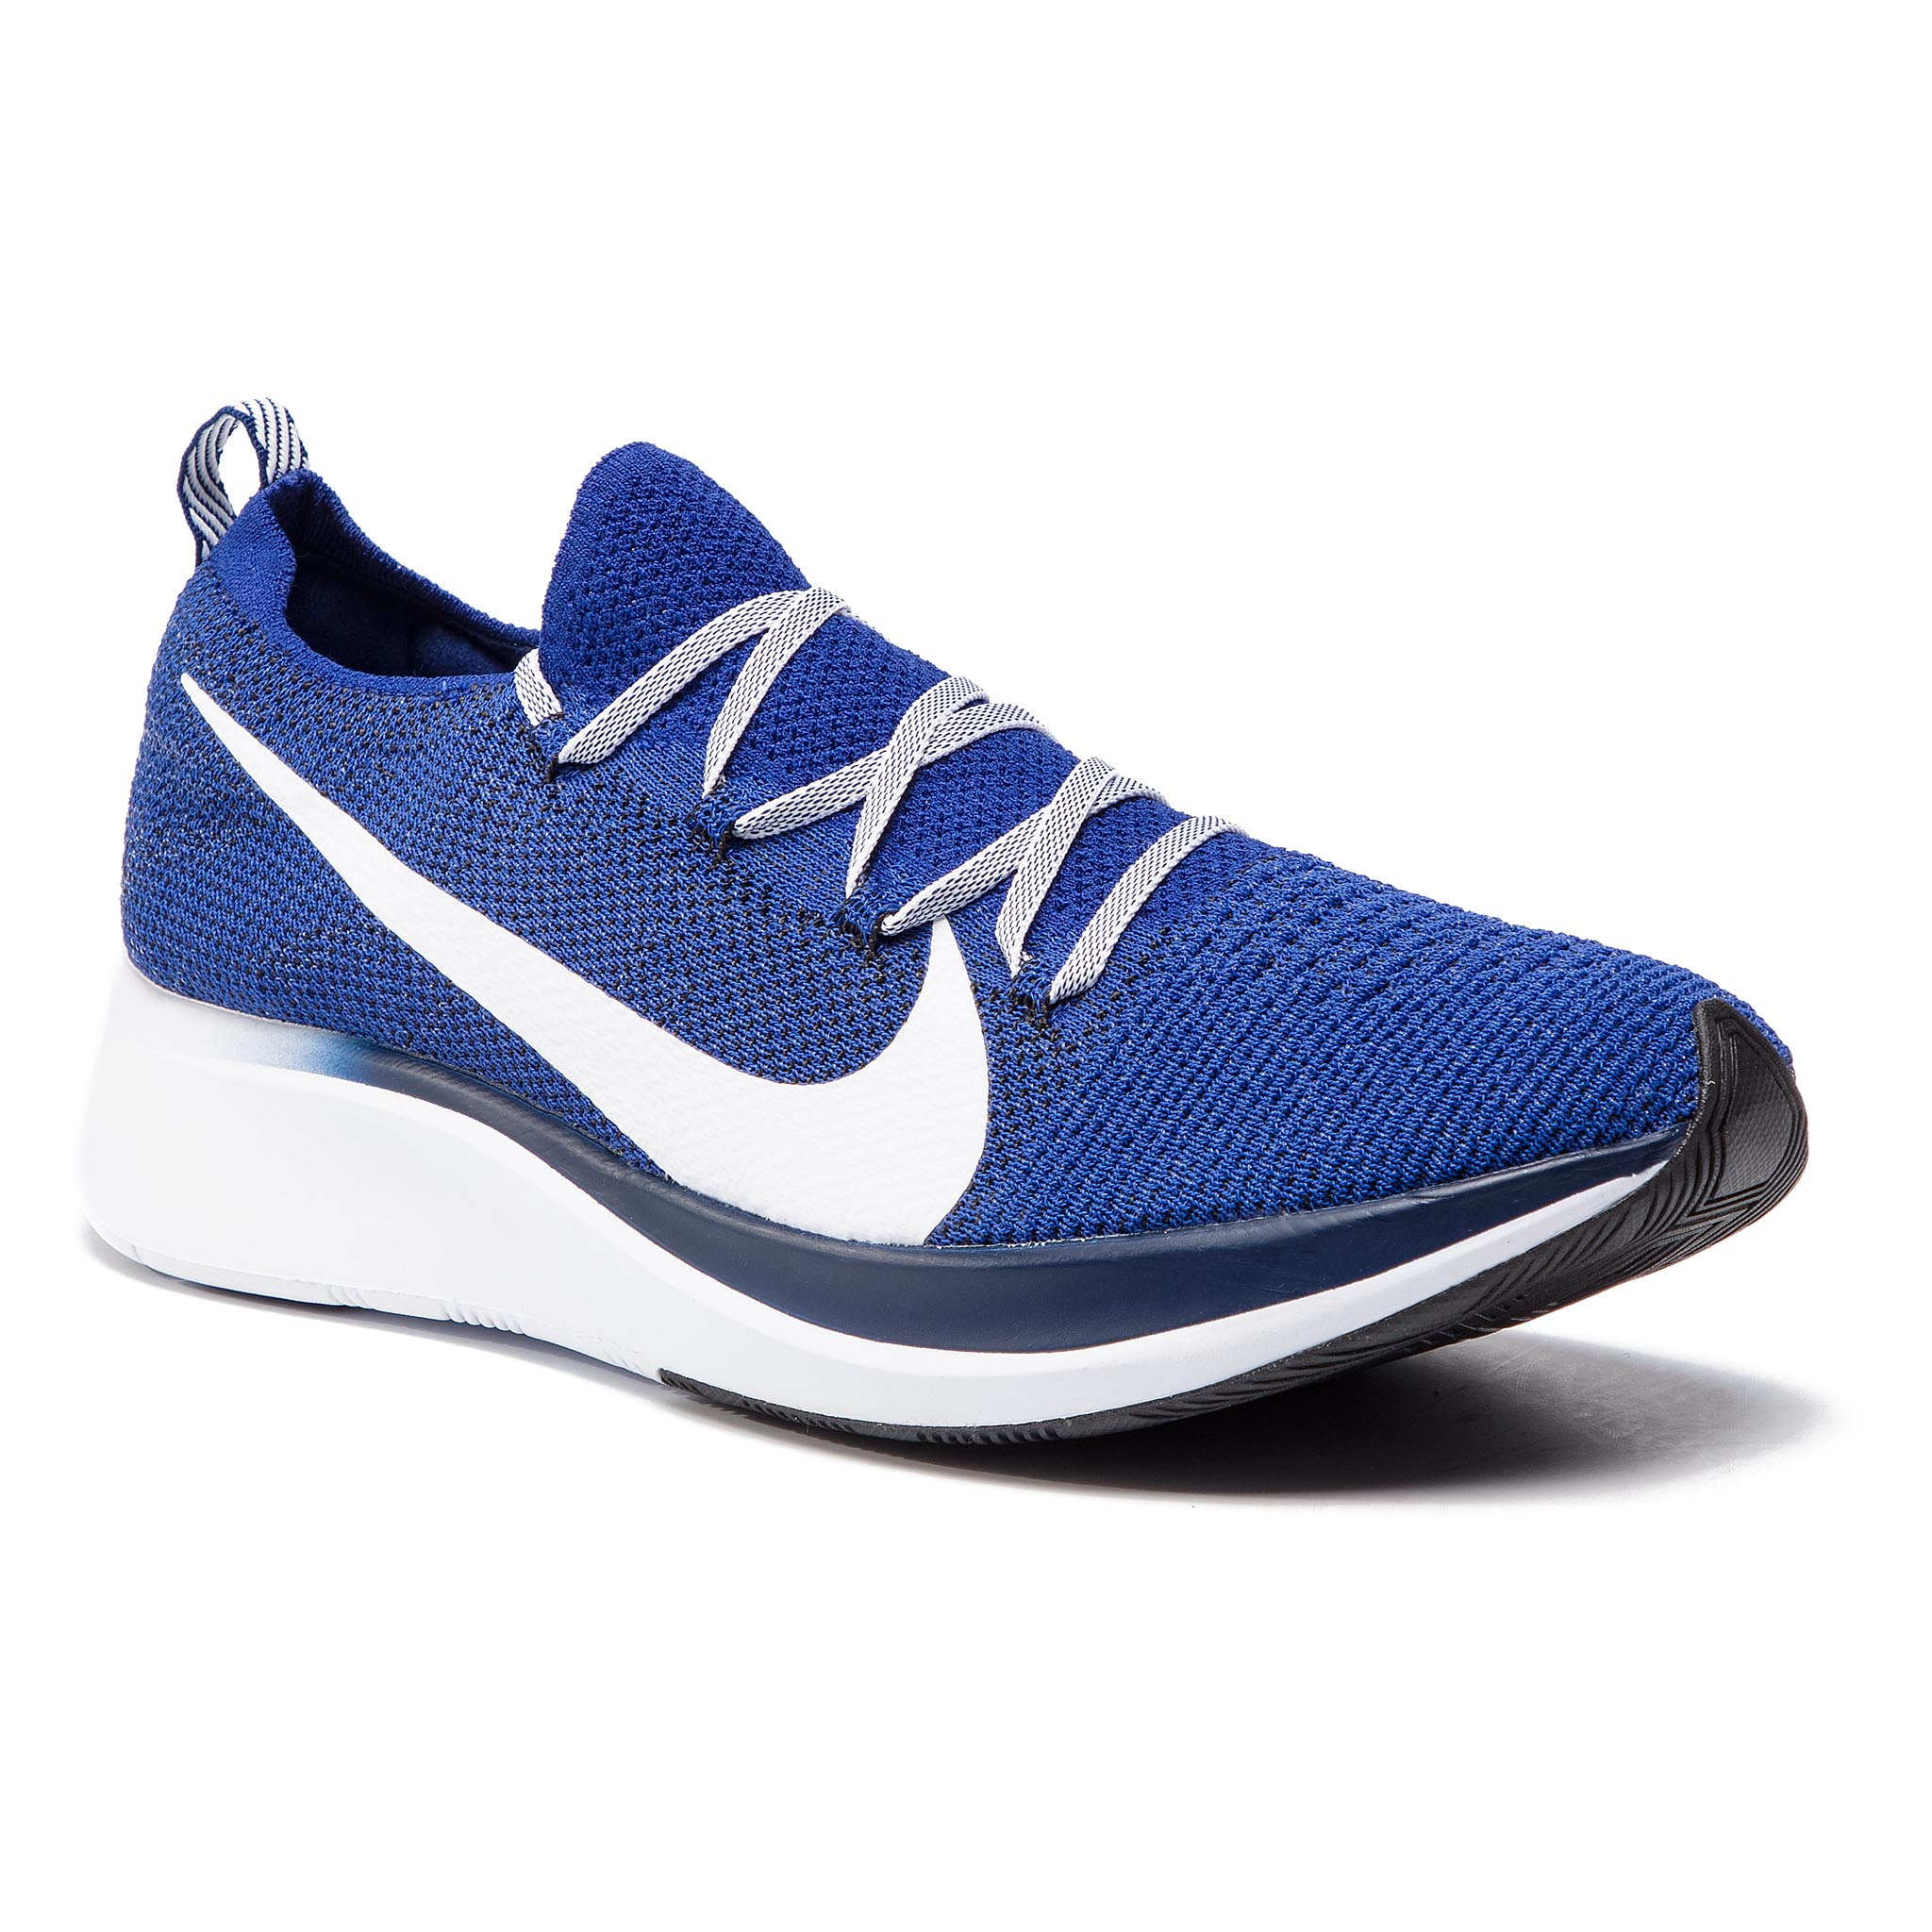 buy popular 7a351 0726f Shoes NIKE Zoom Fly Fk AR4561 400 Deep Royal White Blue Void